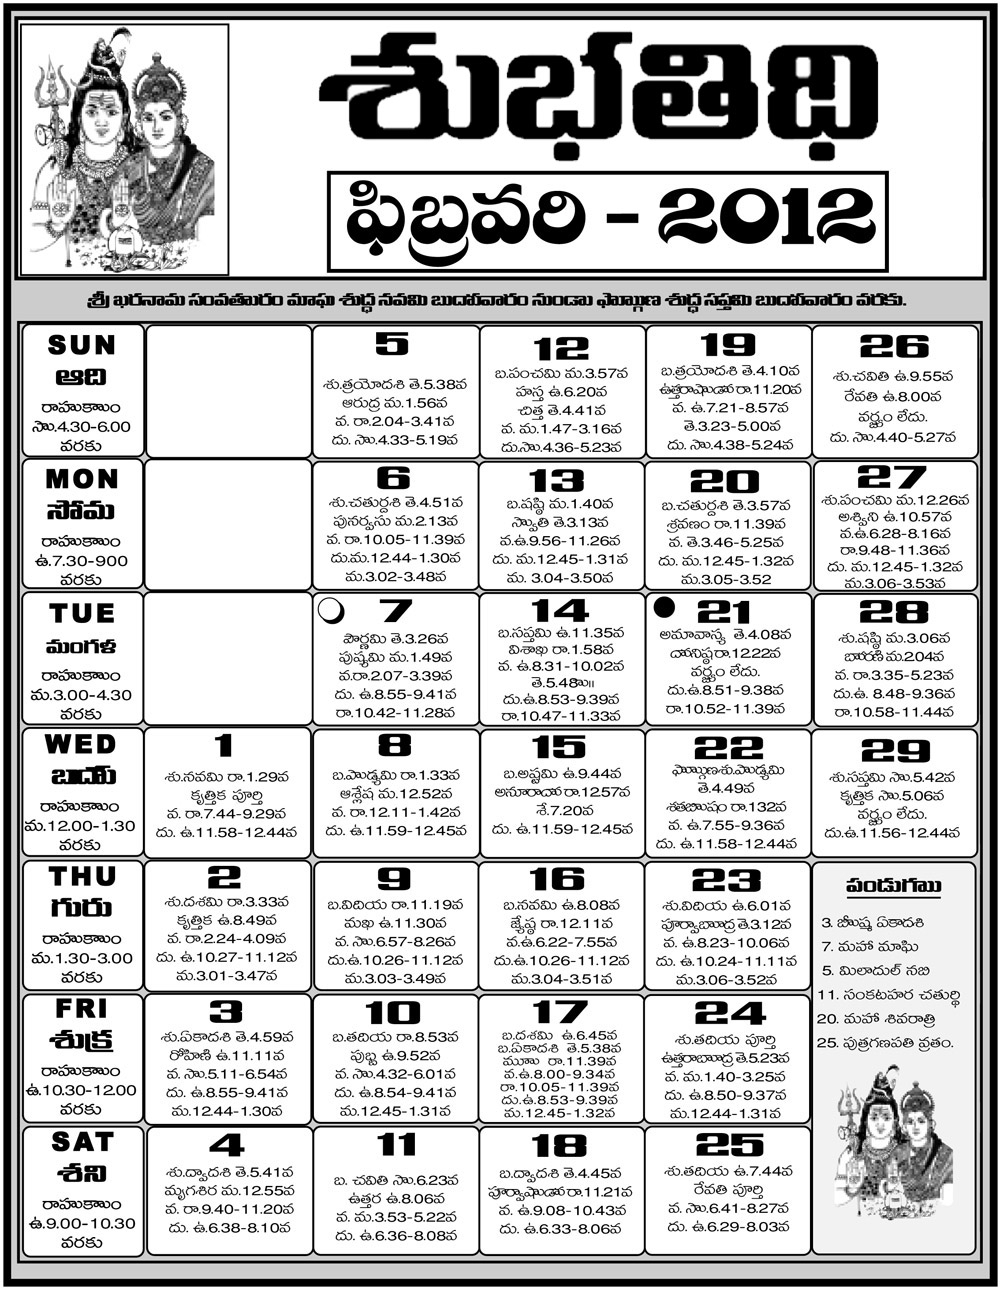 Telugu Calendar 2012 | Telugu Calendar 2011 | Telugu Calendar 2010 in Hindu Calendar With Tithi 2012 March